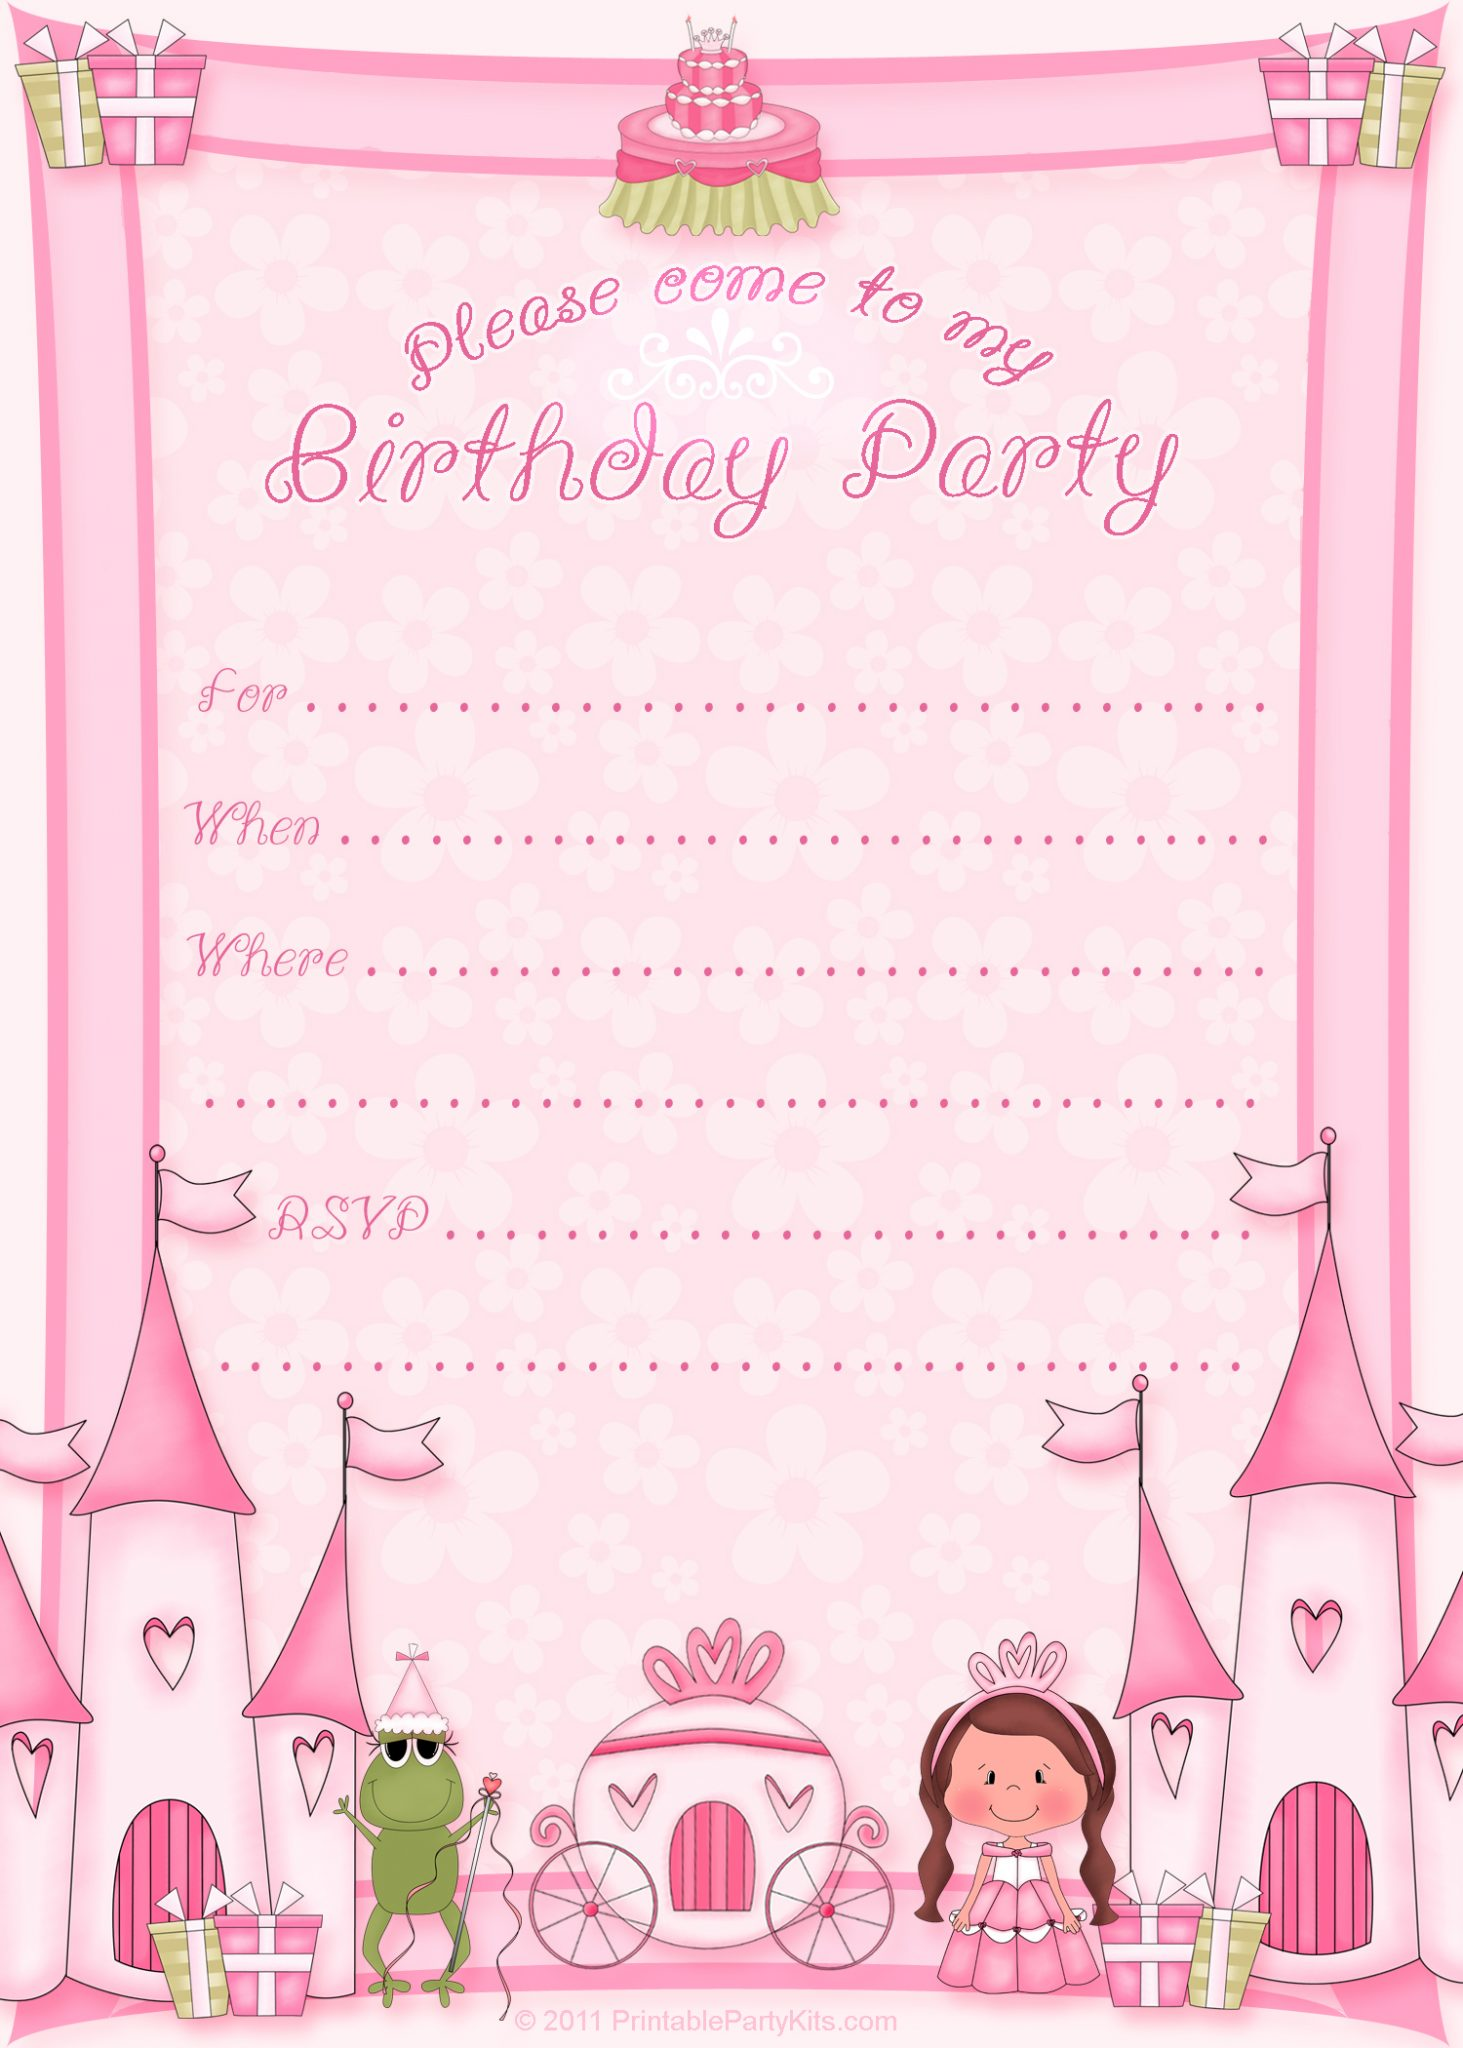 Birthday Invitation Template Free is one of our best ideas you might choose for invitation design